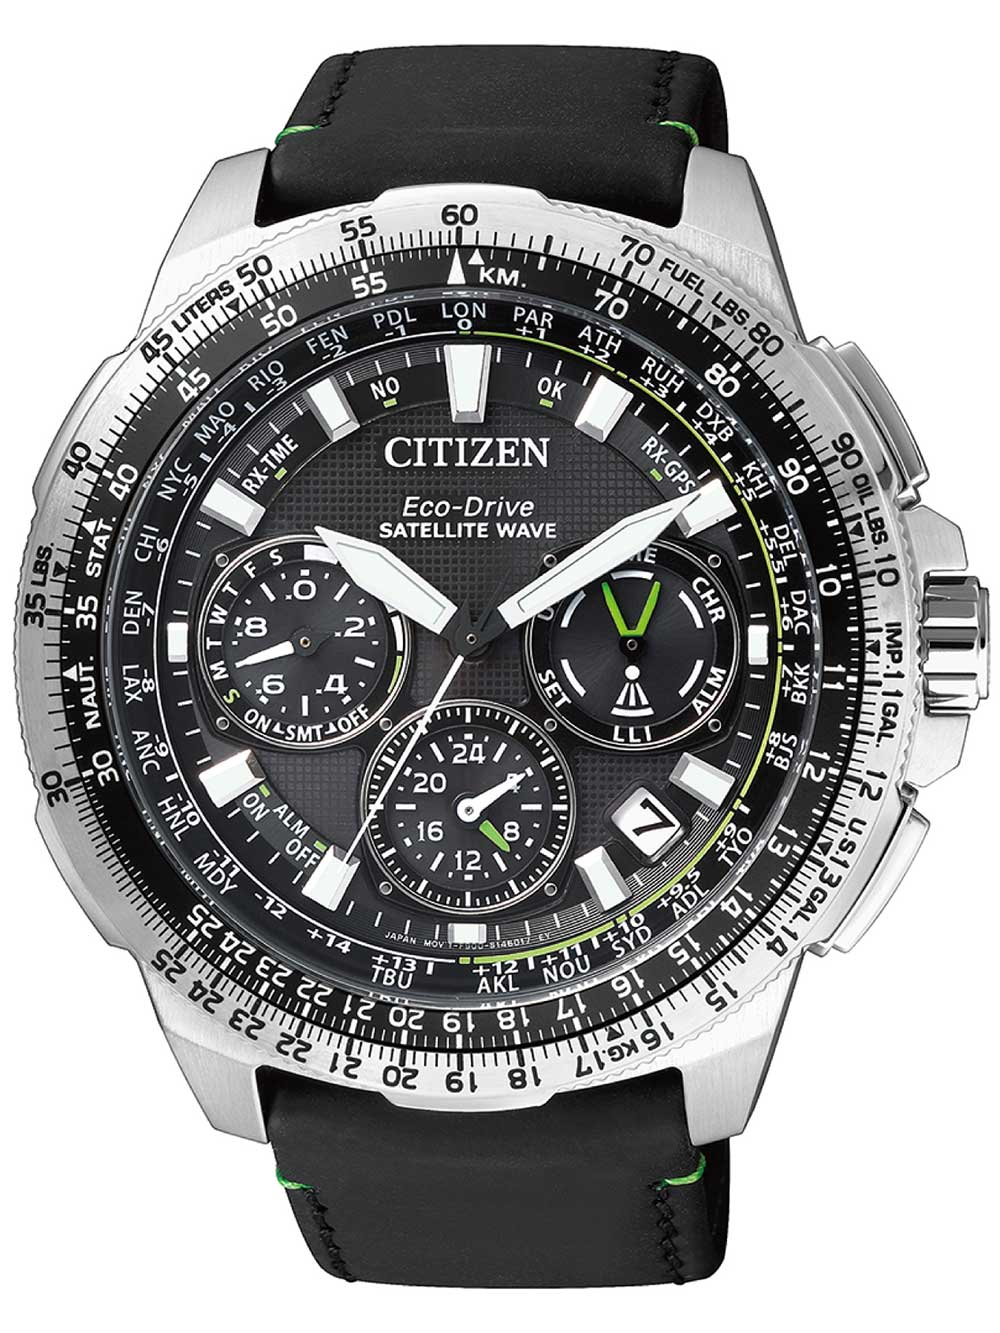 Citizen CC9030-00E Eco-Drive Satellite Wave GPS 47mm 20ATM